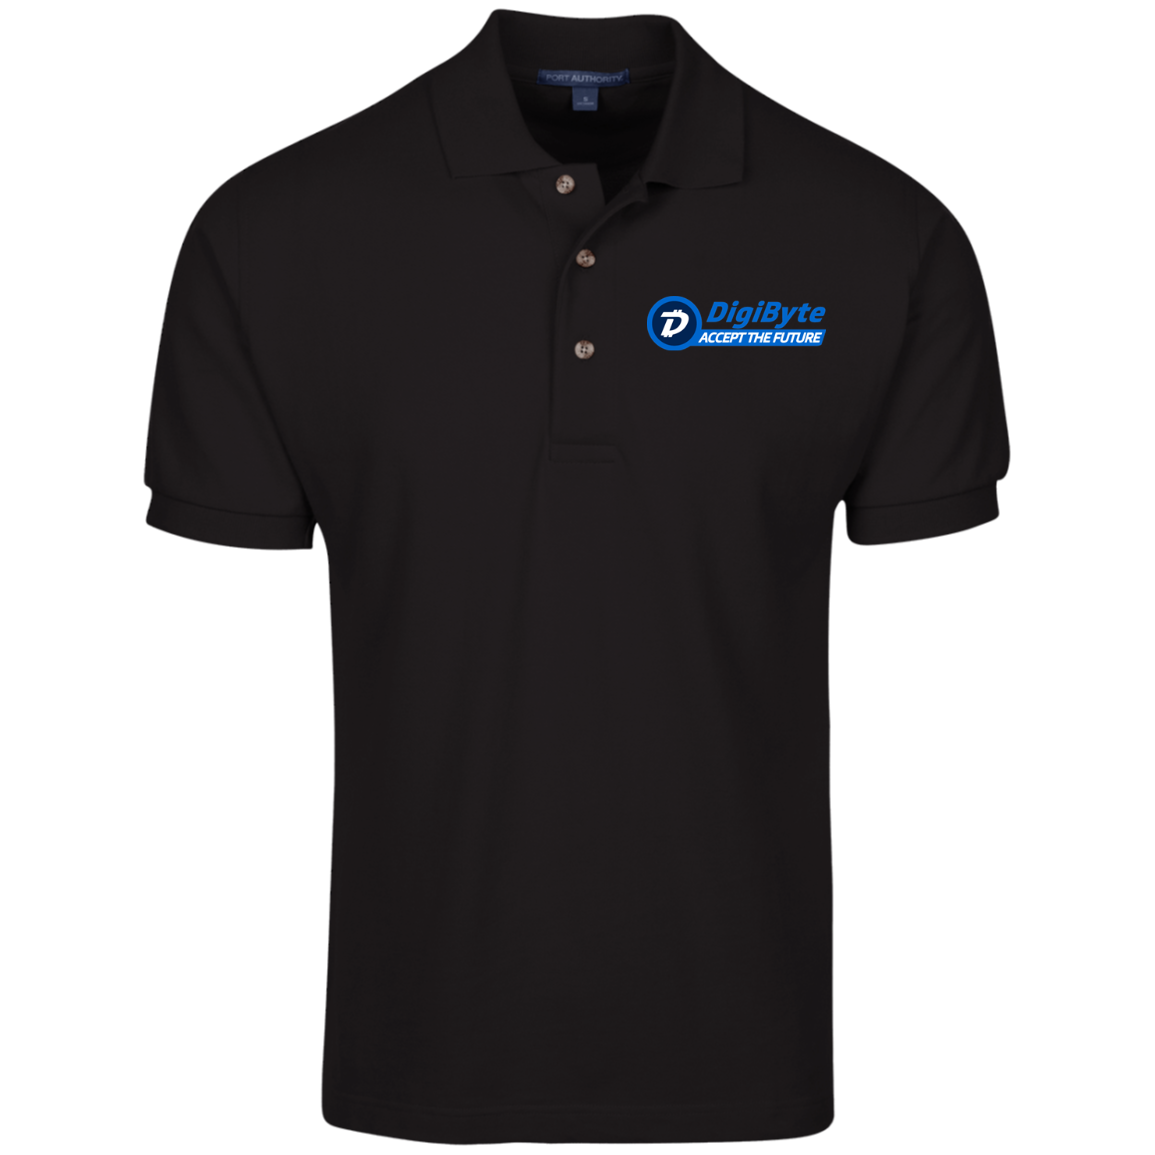 DigiByte Accept the Future – Embroidered Cotton Polo by Port Authority (Dark)